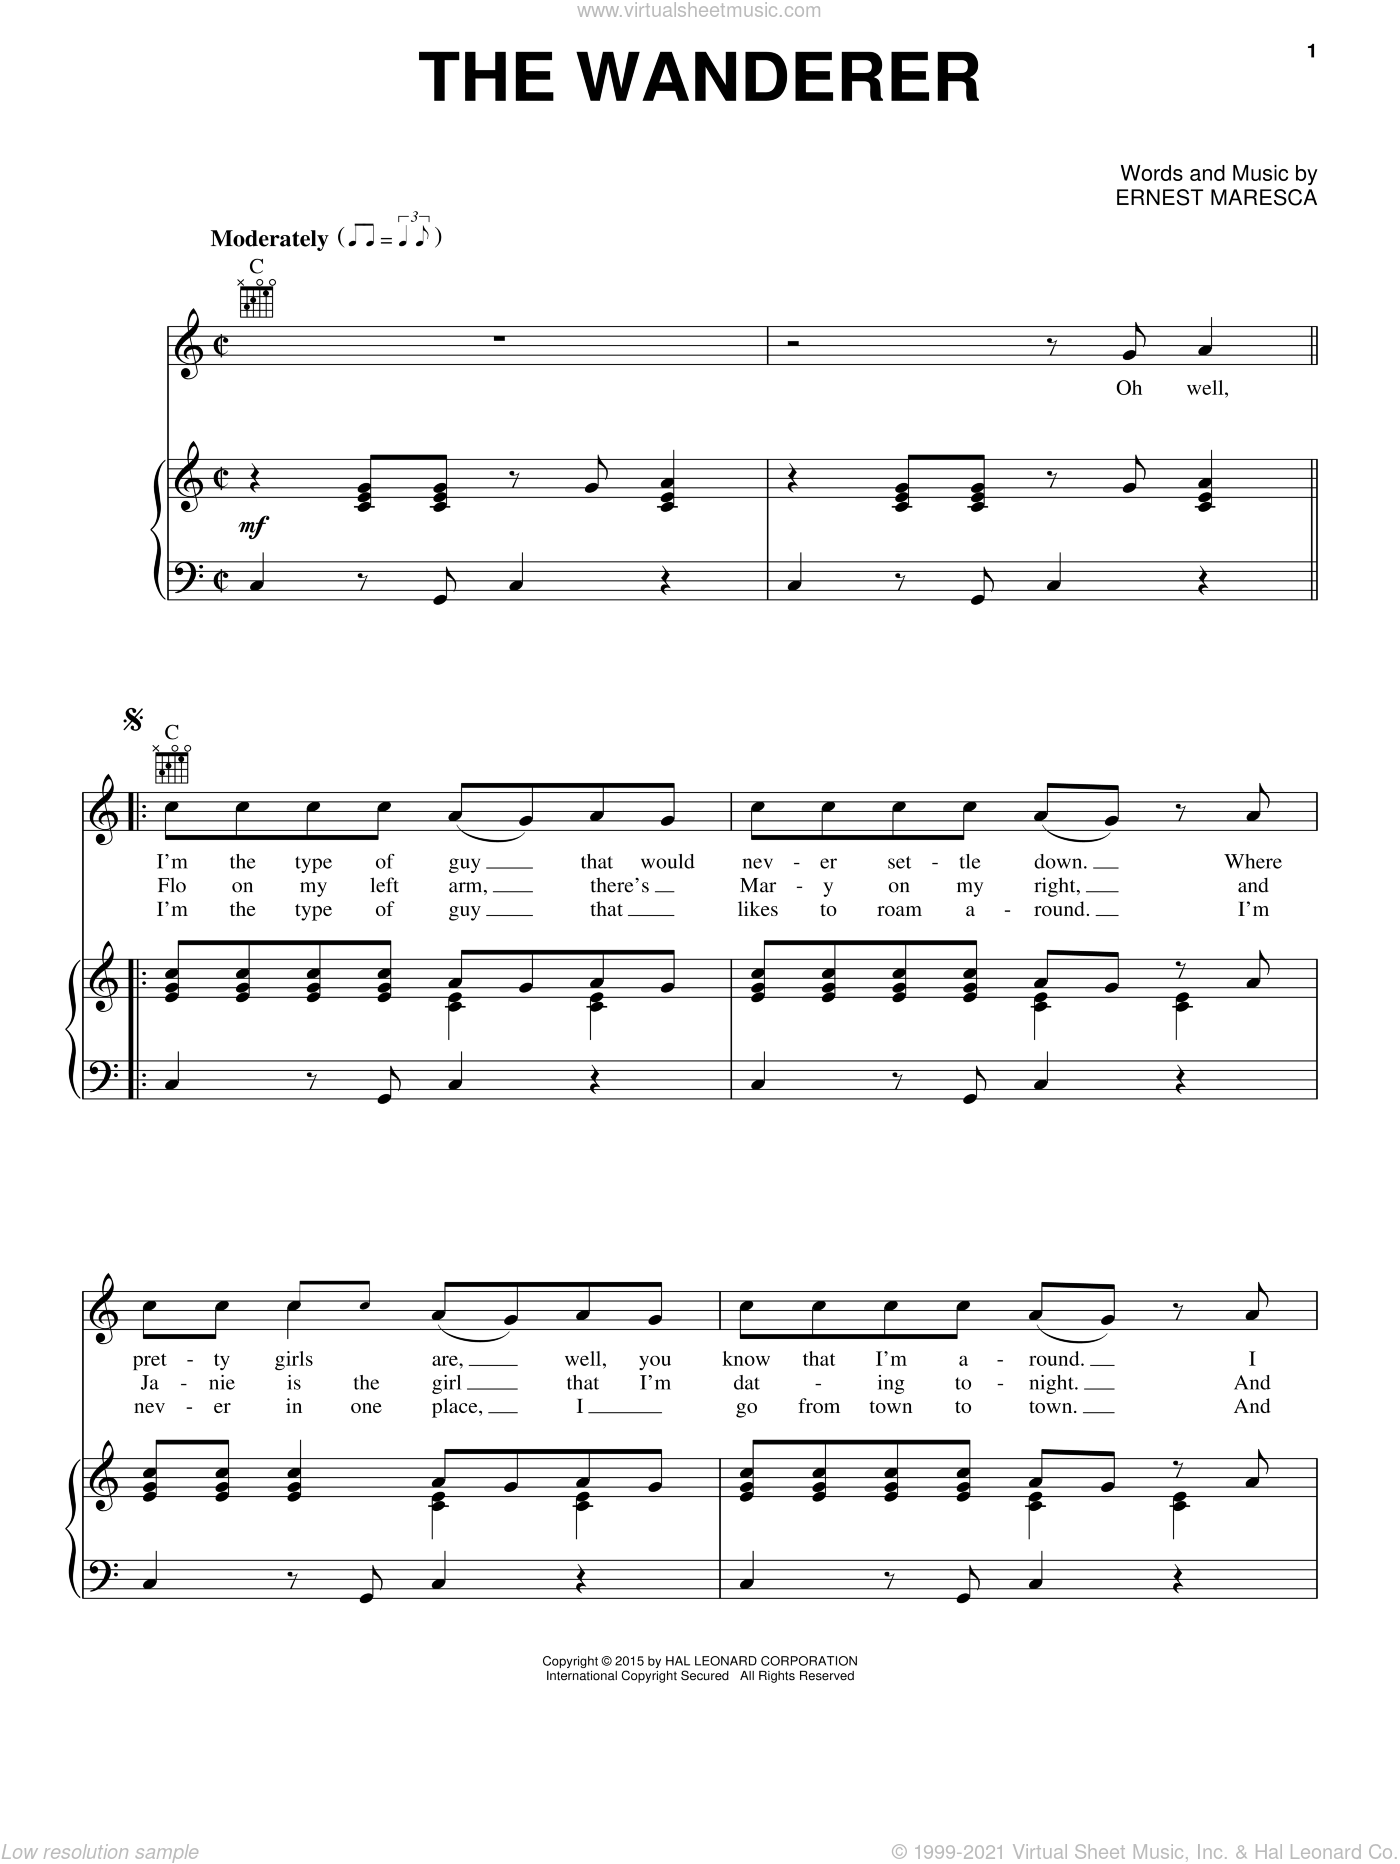 The Wanderer sheet music for voice, piano or guitar by Dion and Ernie Maresca, intermediate skill level